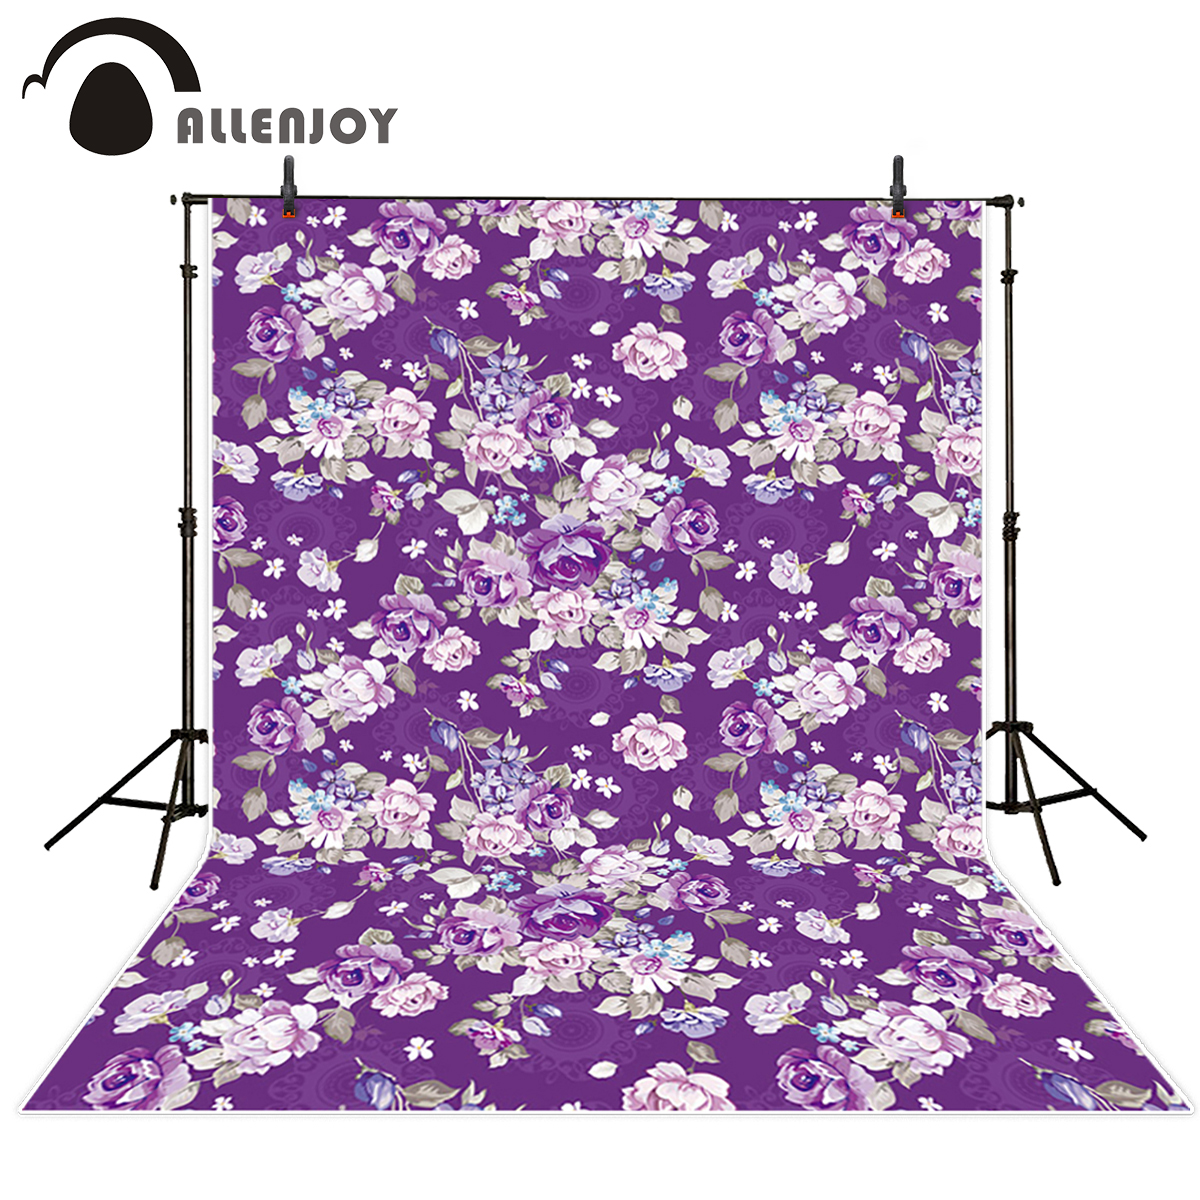 Allenjoy photography backdrops Purple Flowers Background Classic Wedding backdrop photocall for kid photo background photography